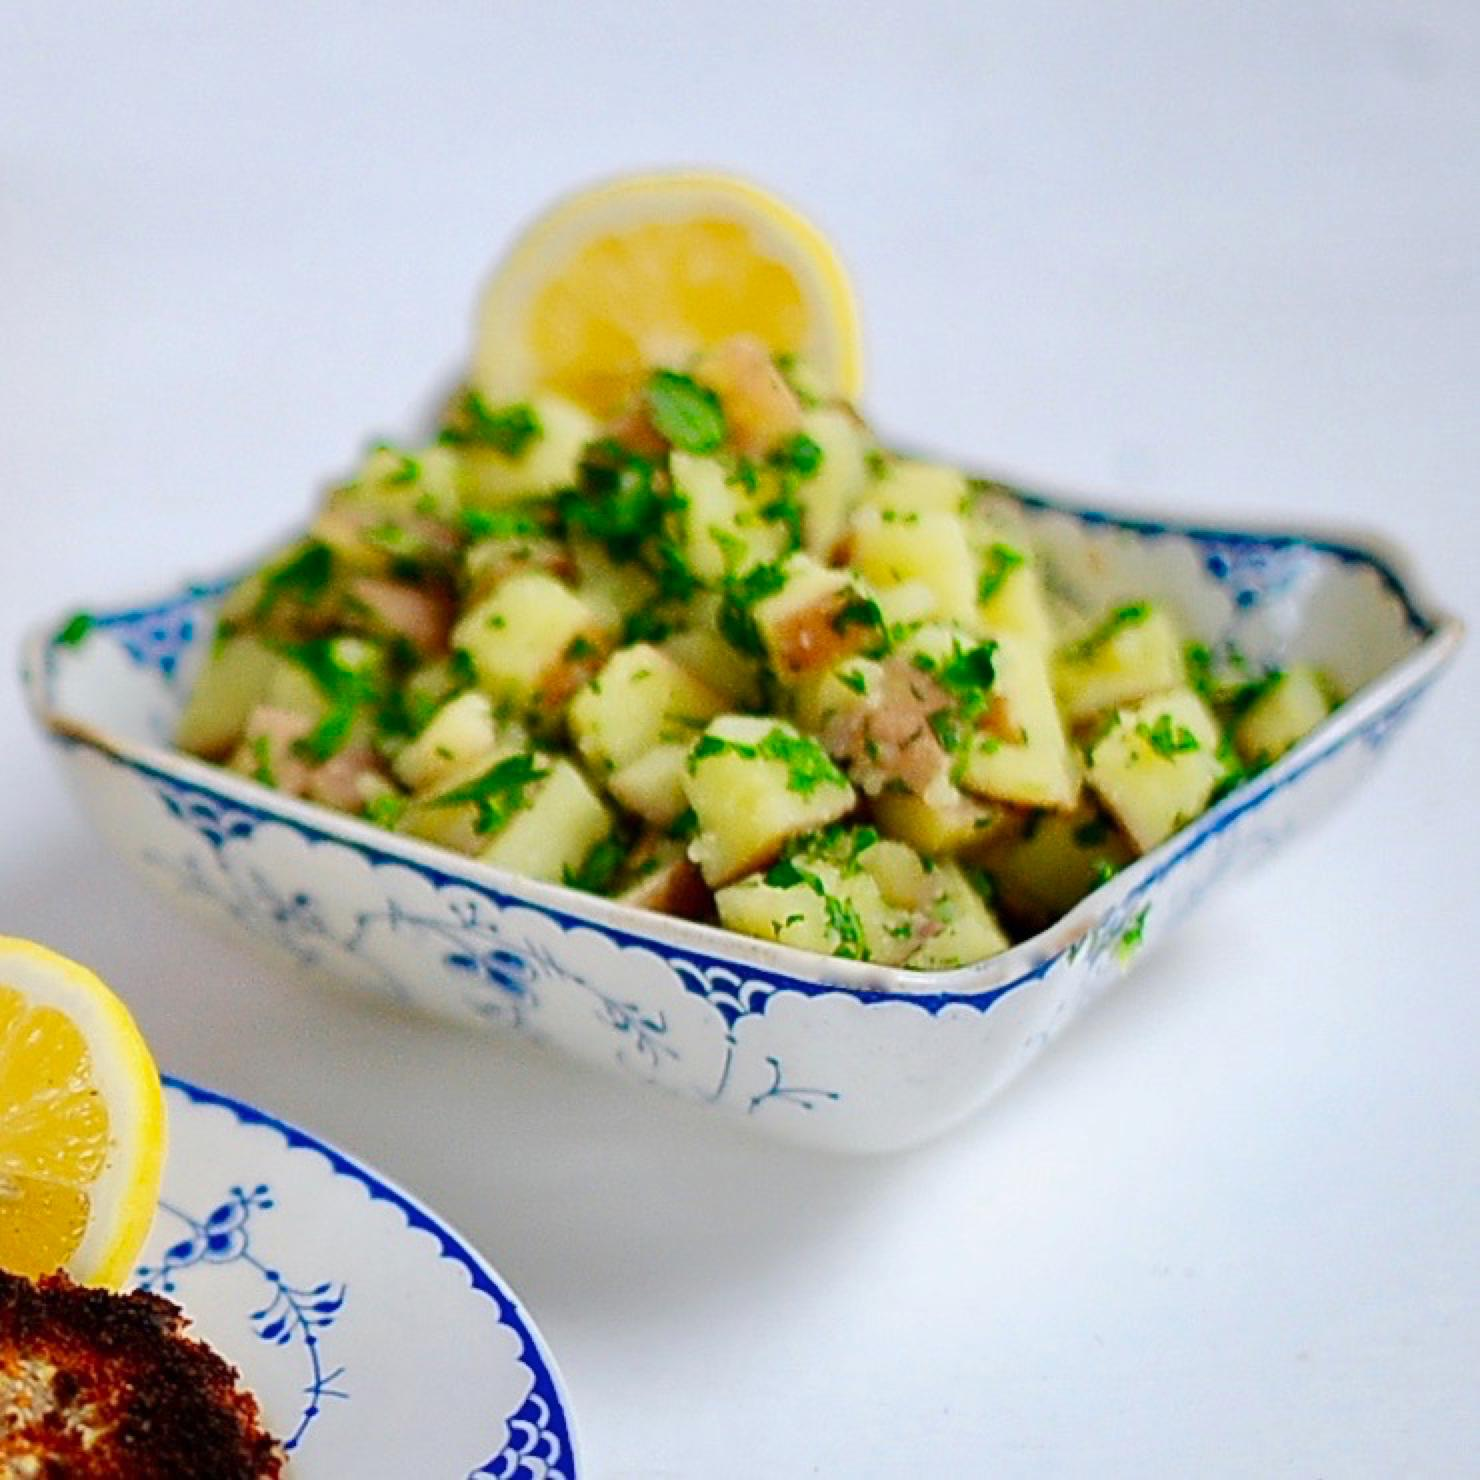 Vegan Lemon Parsley Potatoes